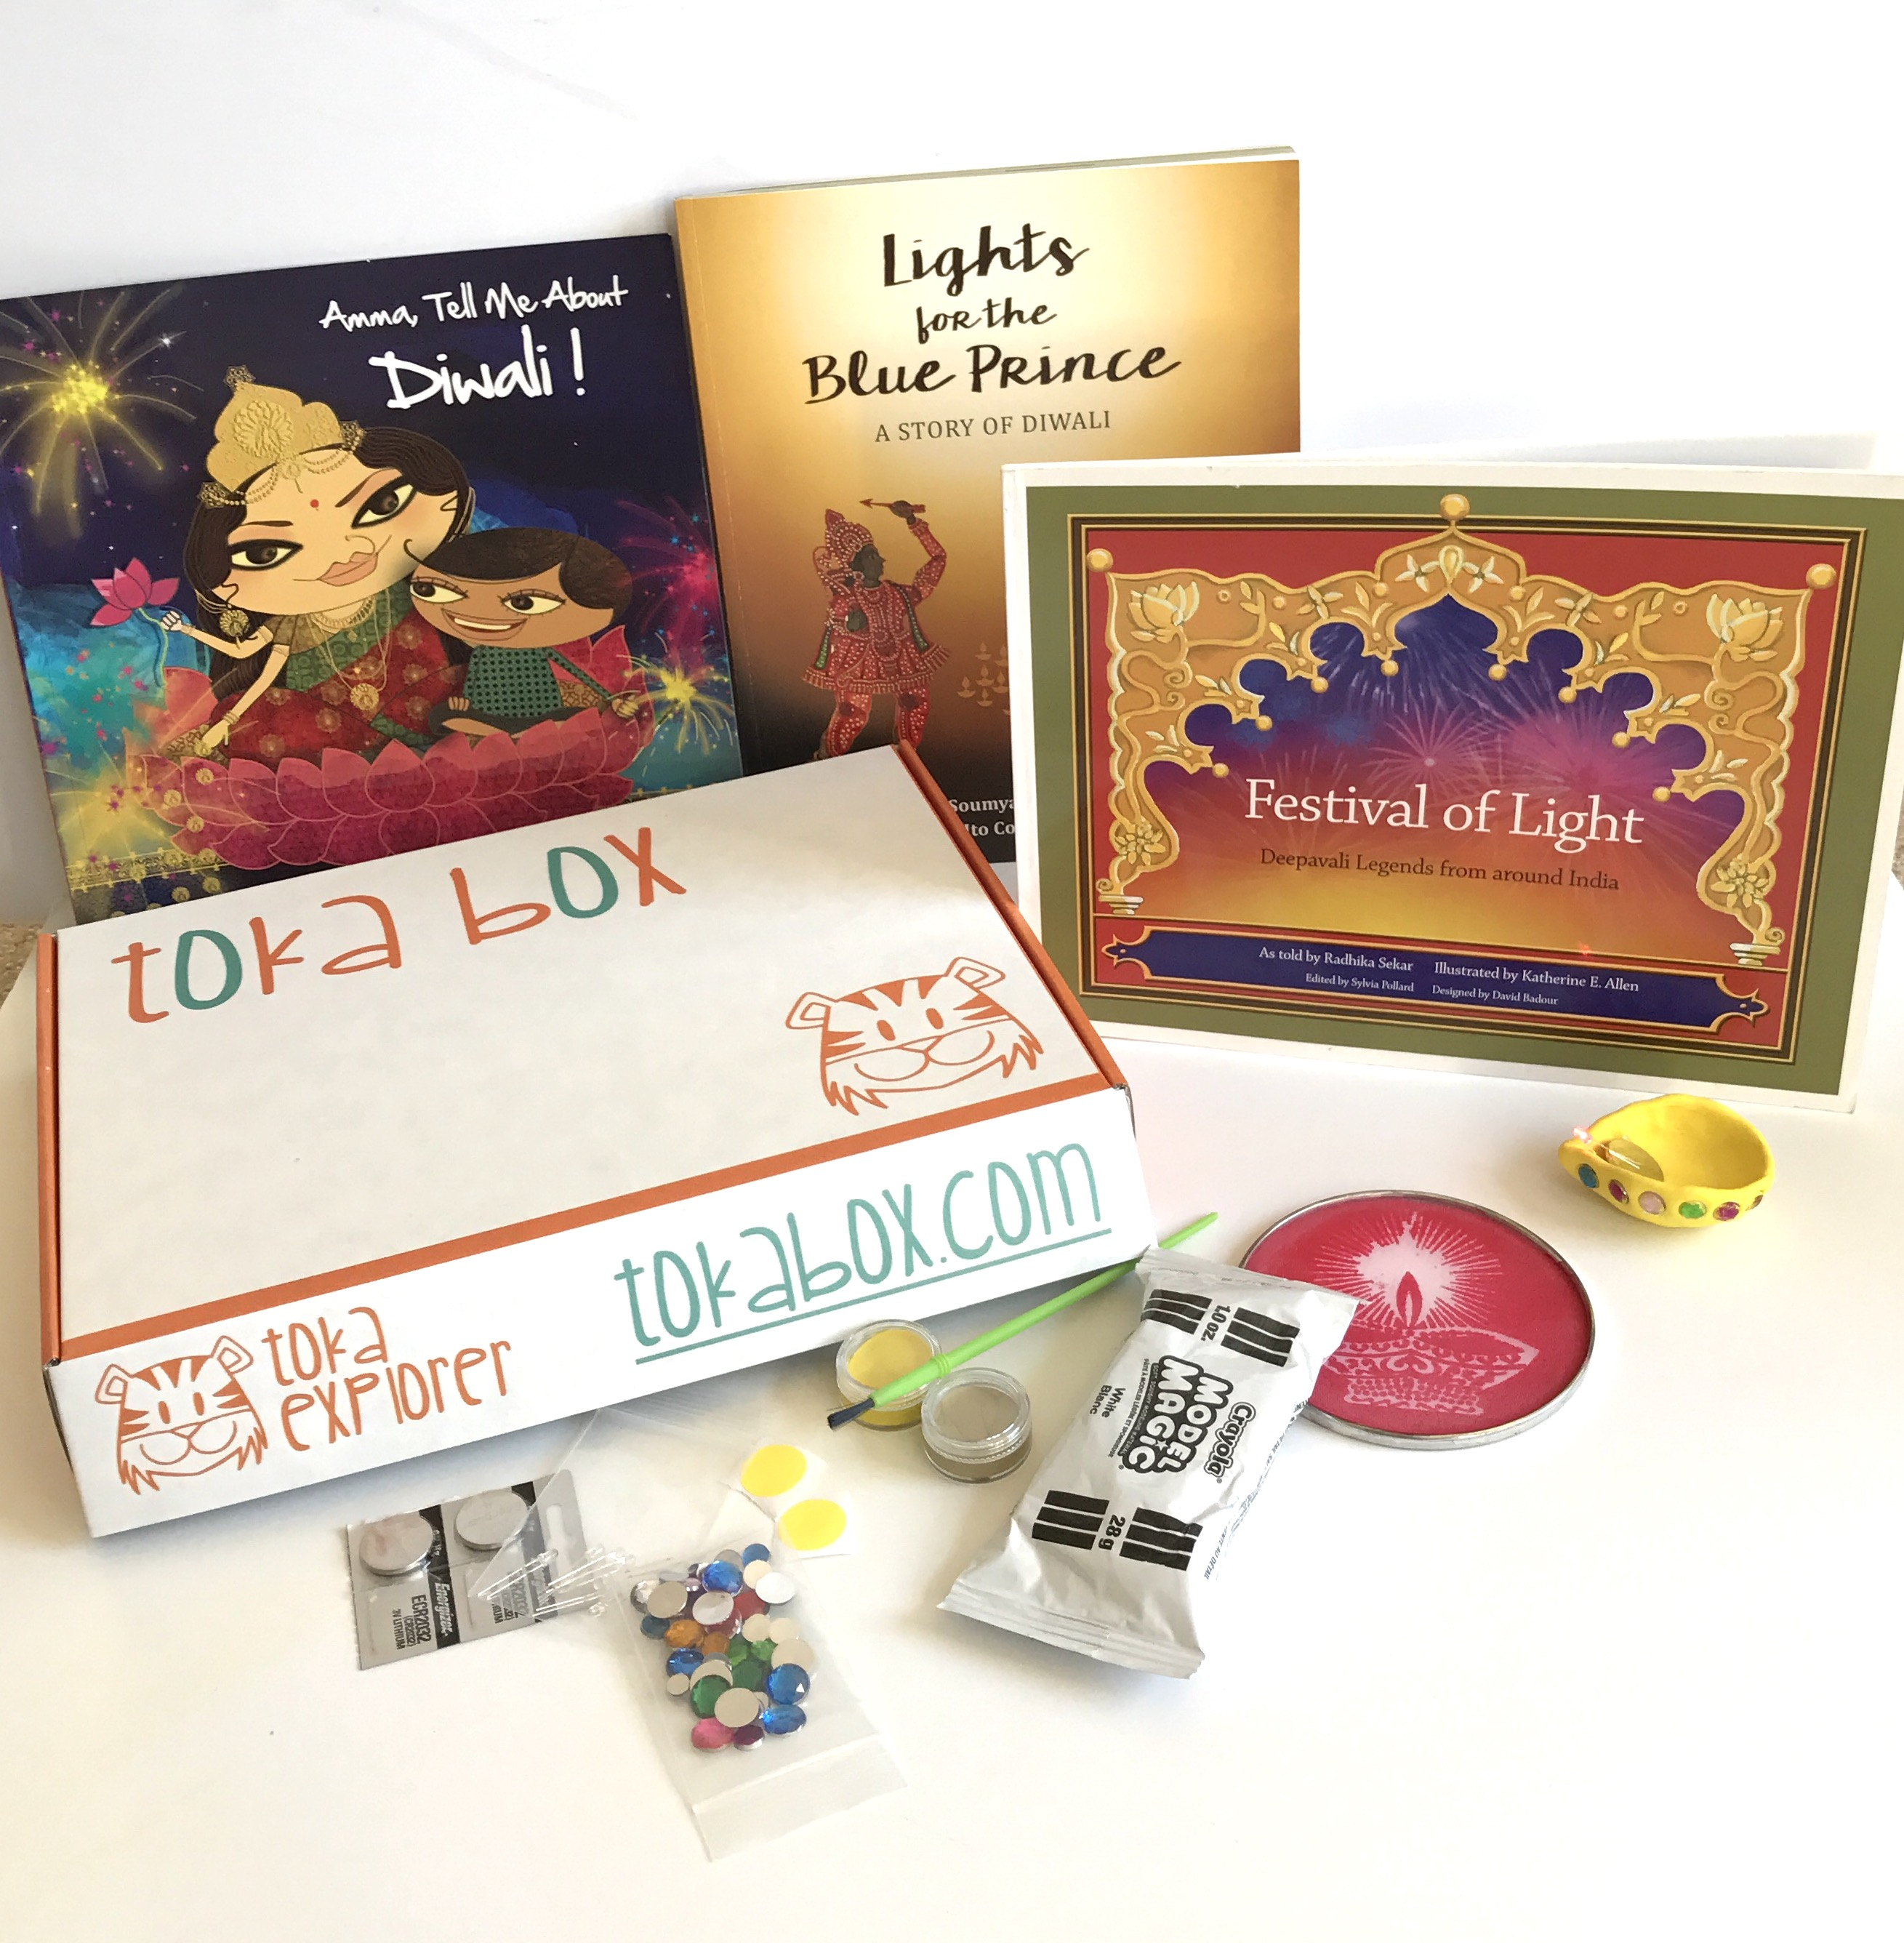 Toka Explorer Diwali Box for 5-8 yr olds